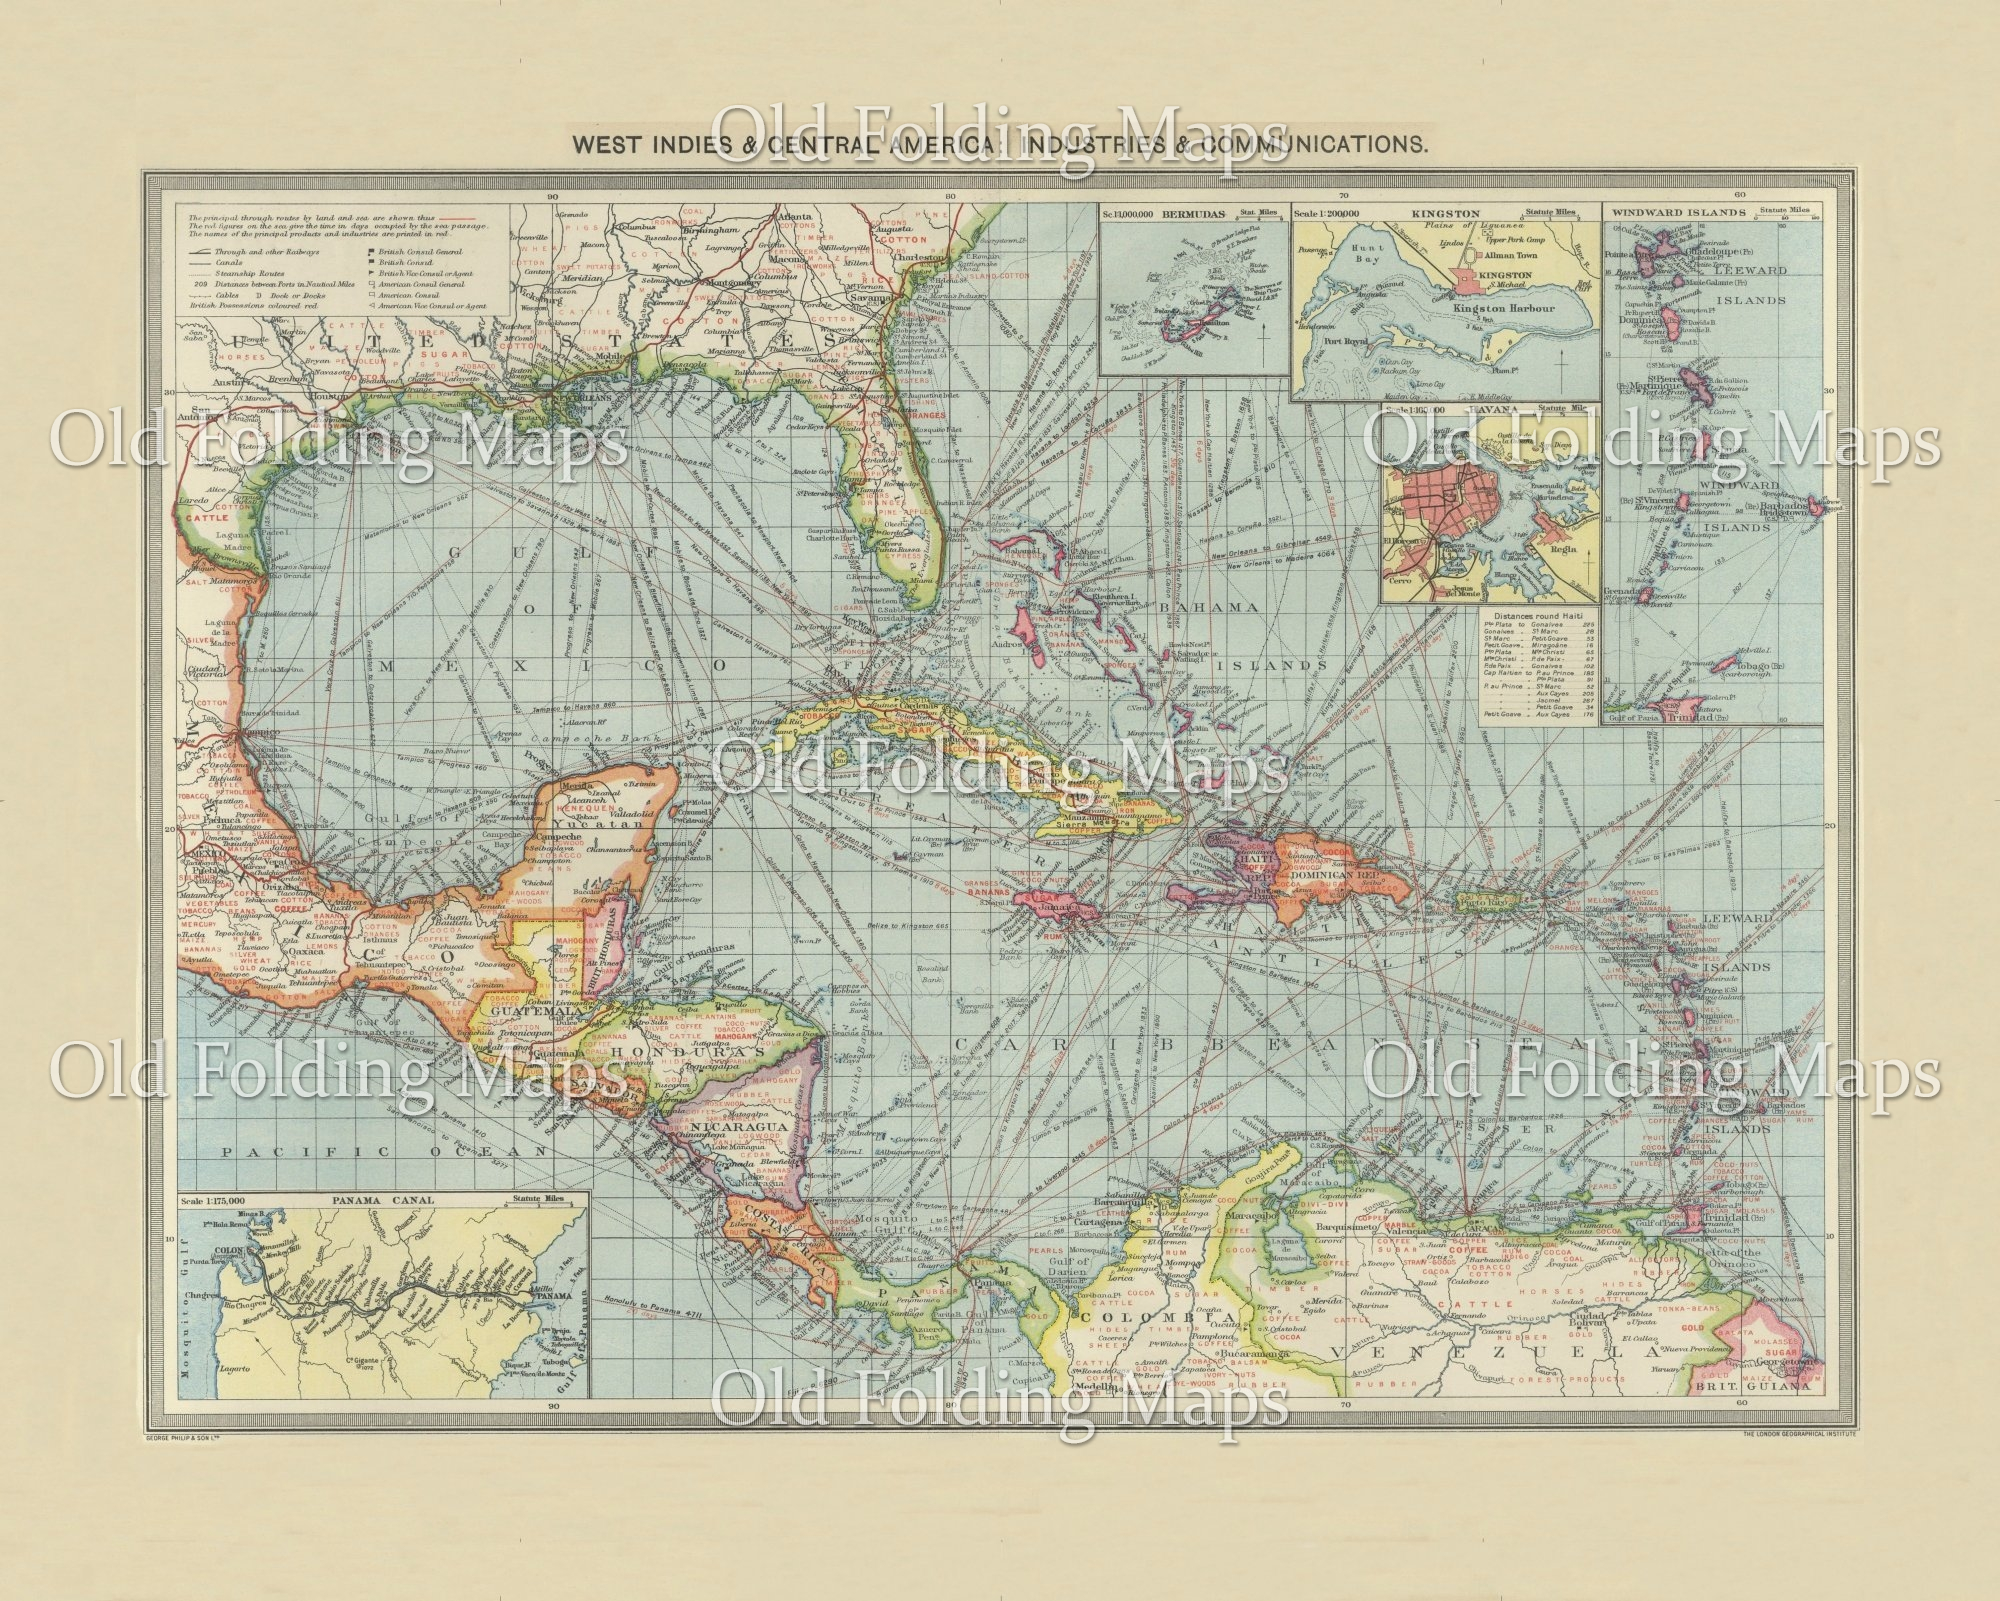 Old Map of West Indies & Central America Industry & Communications circa 1900